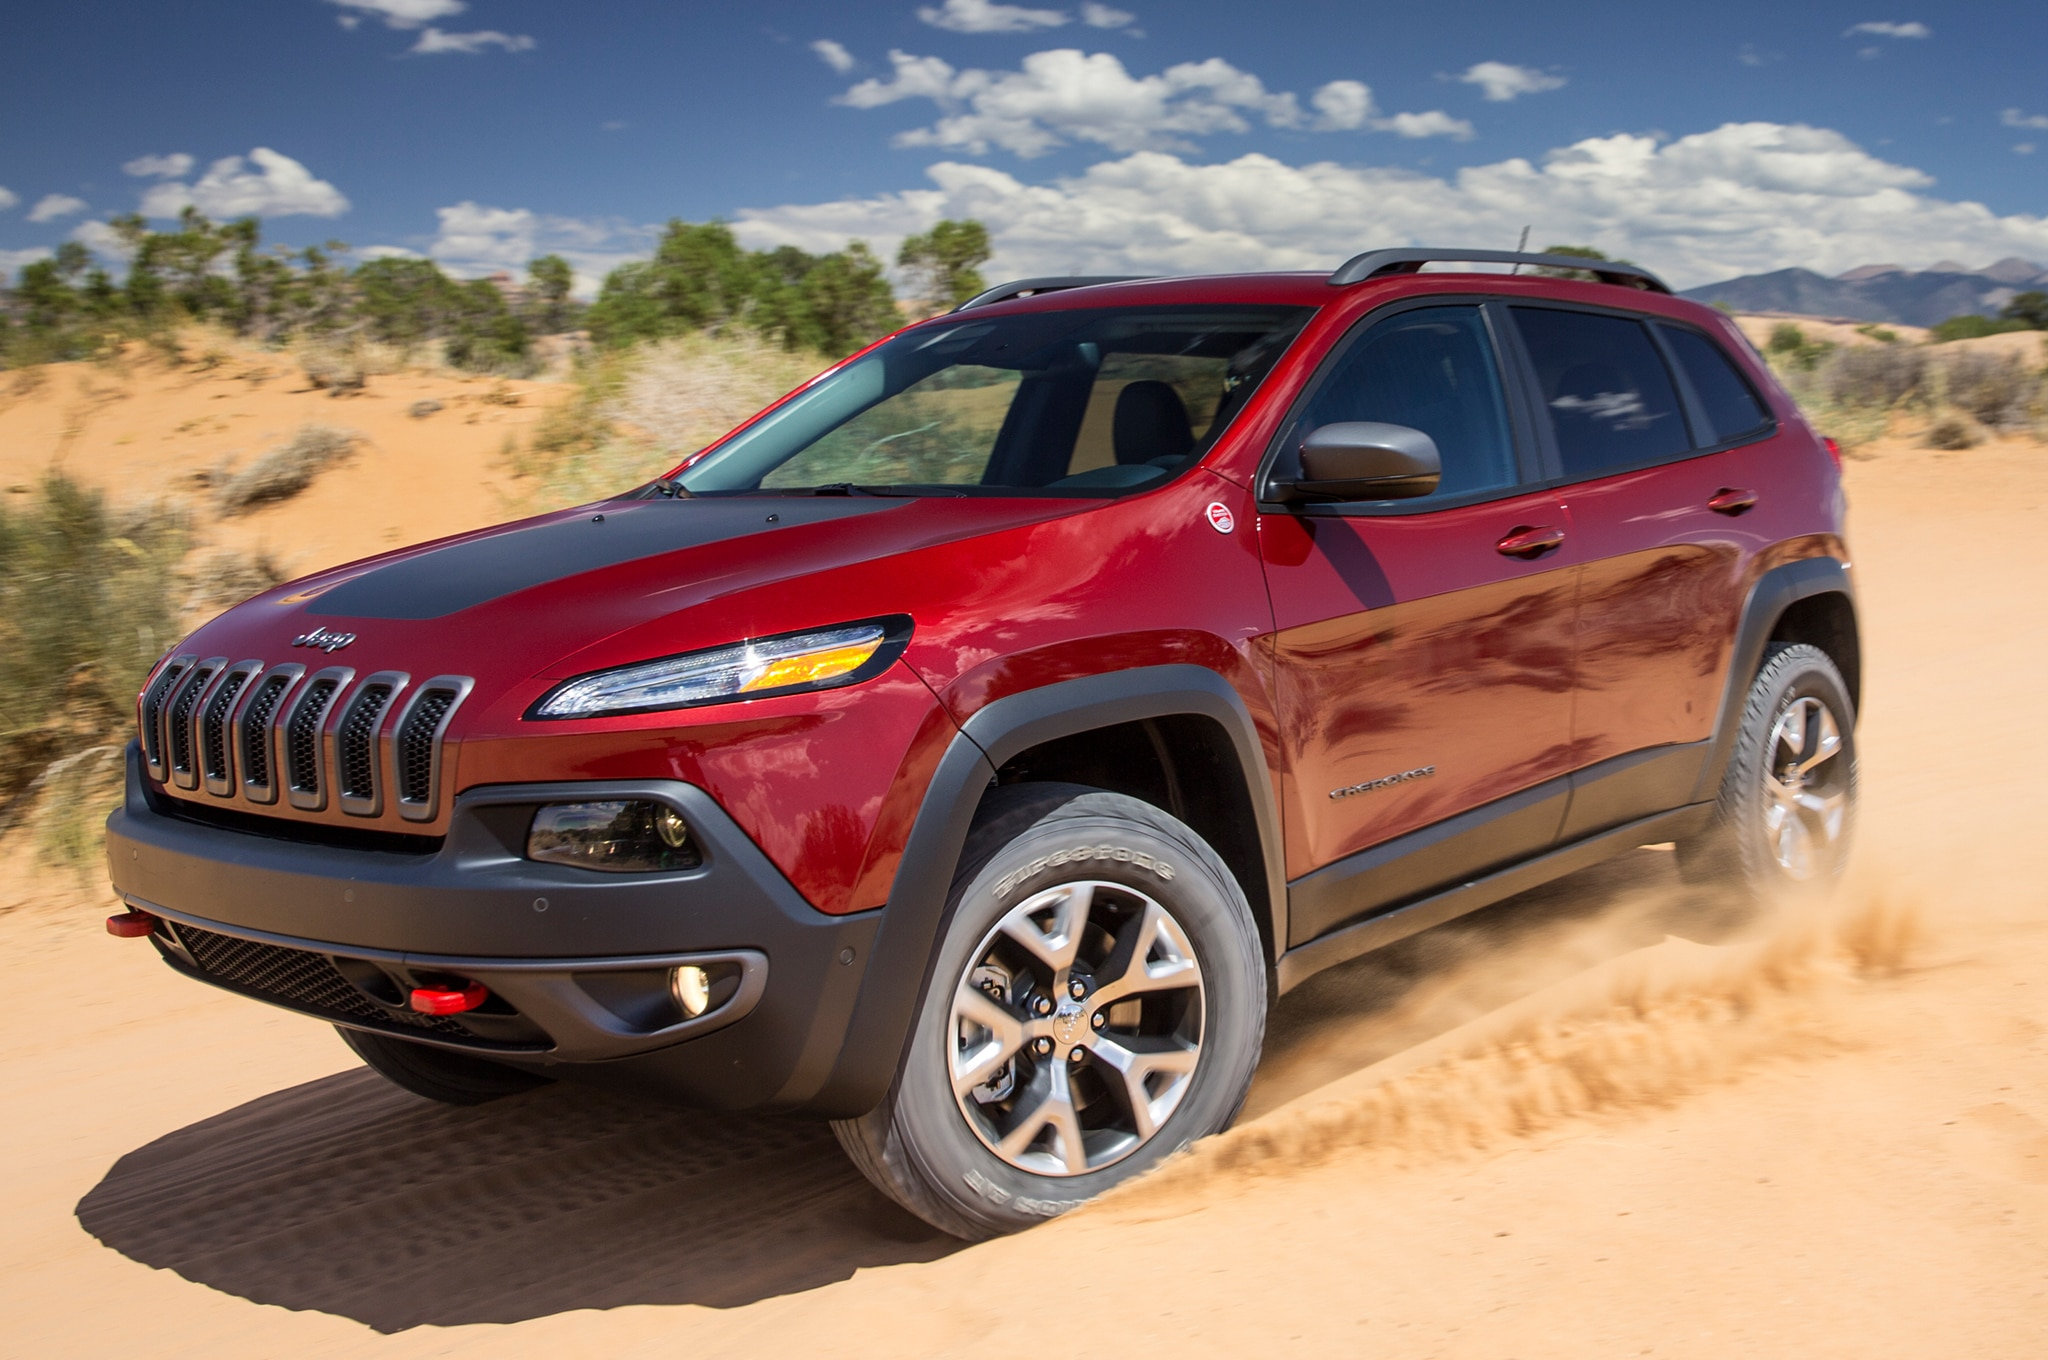 2014 Jeep Cherokee First Drive - Automobile Magazine